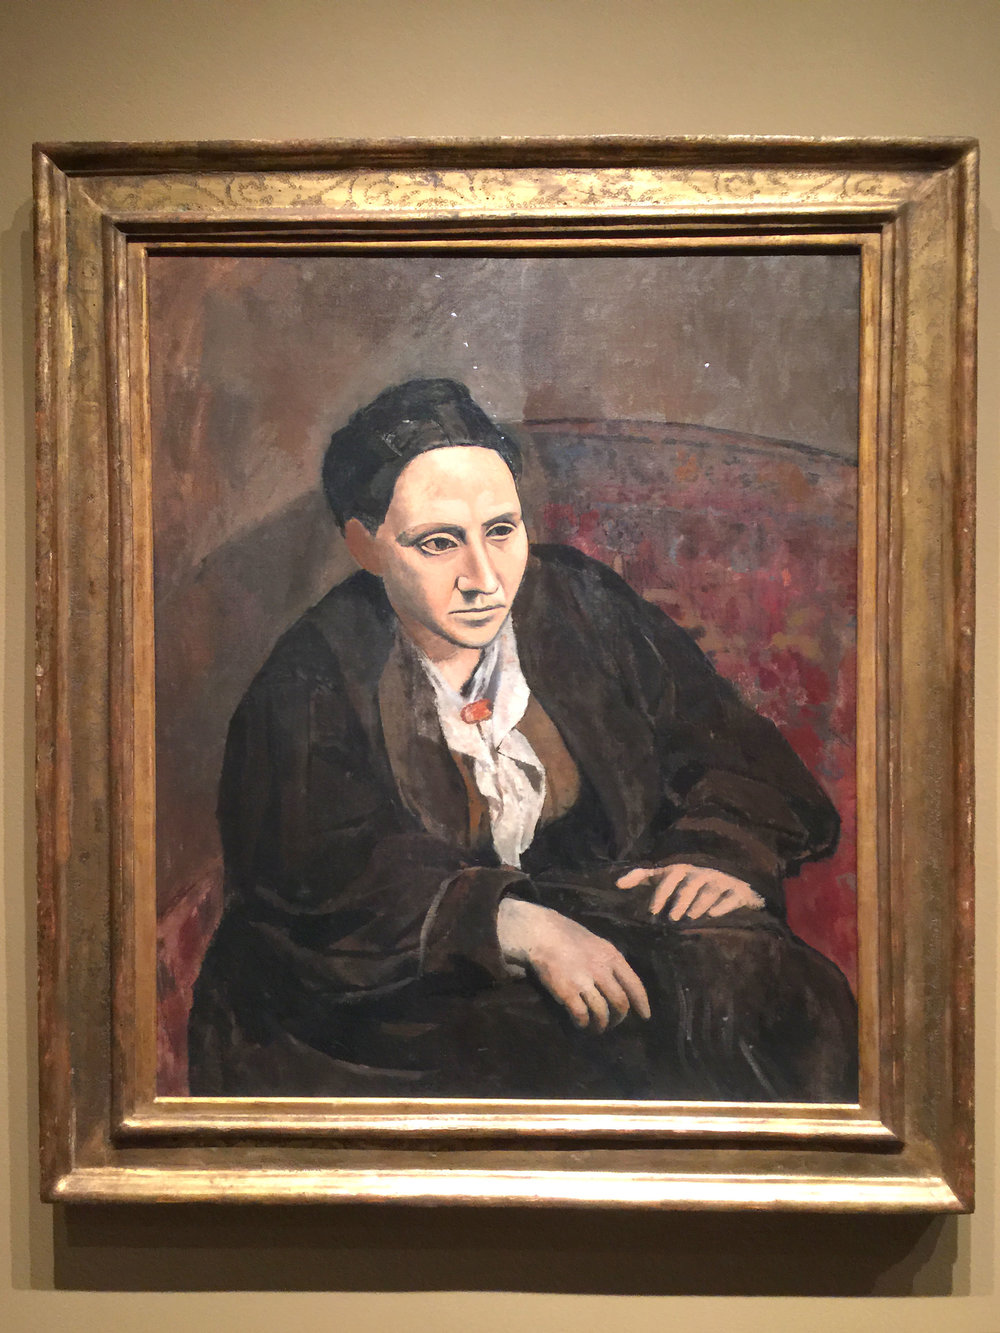 Portrait of Gertrude Stein, Picasso, The Met